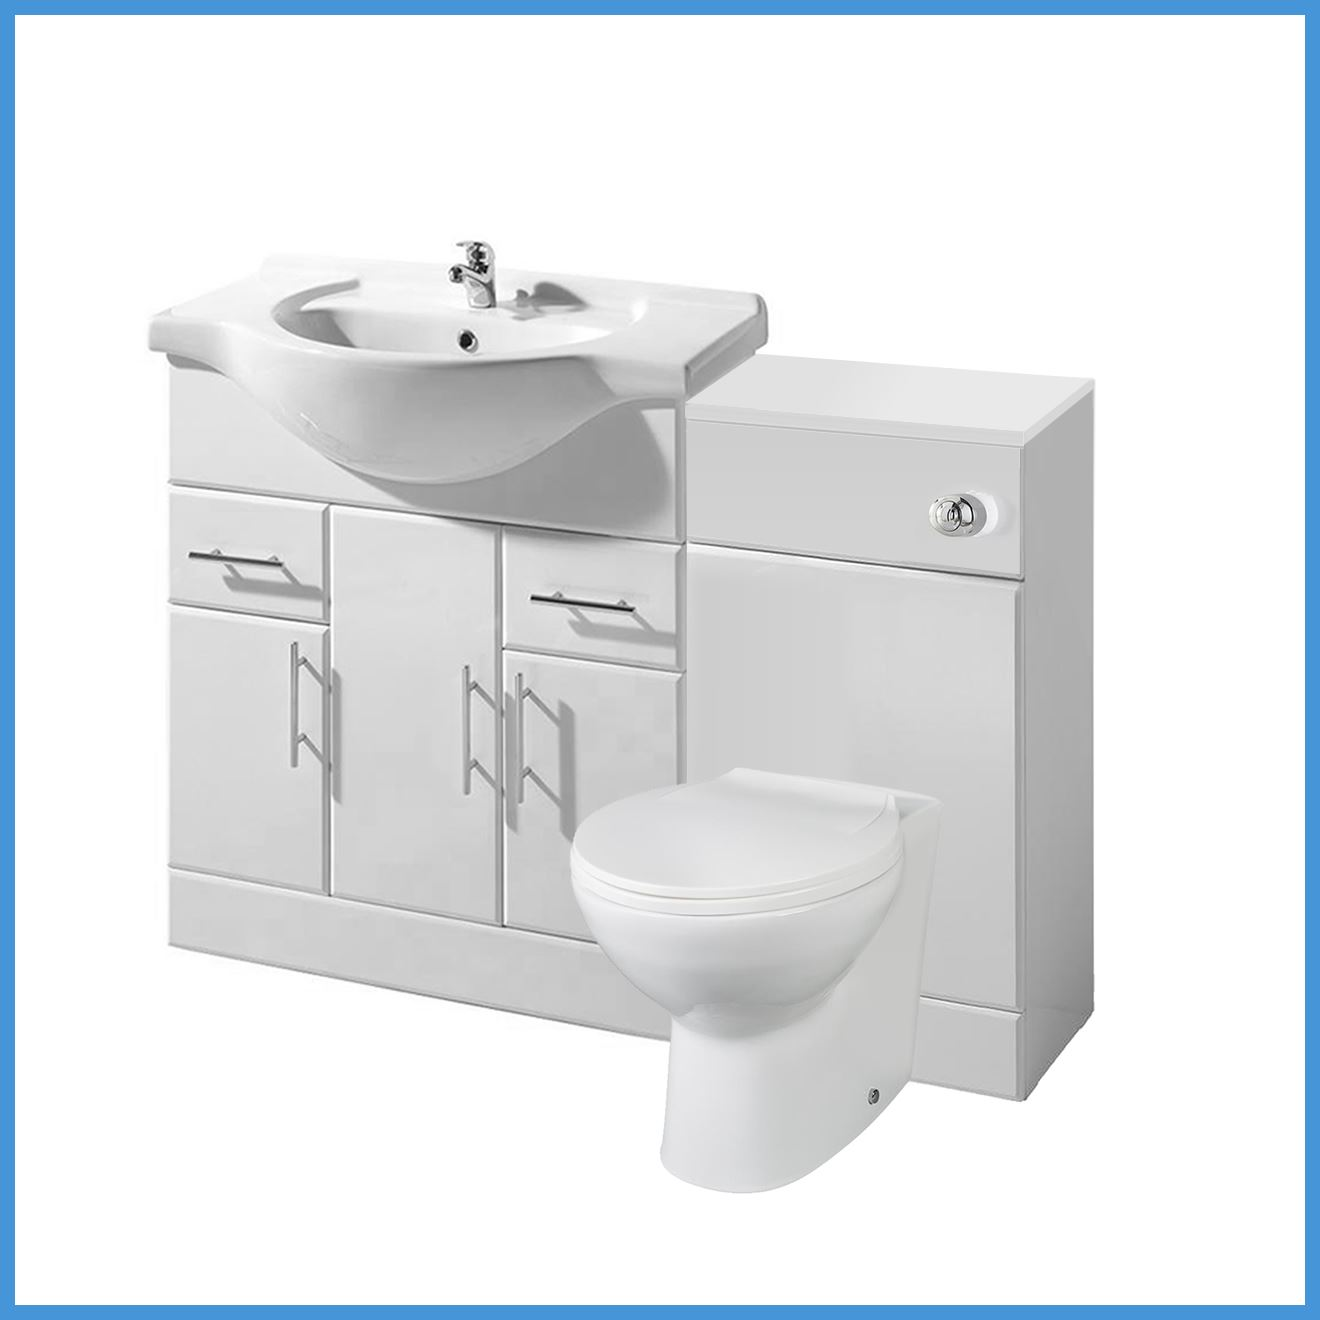 details about high gloss white bathroom vanity unit storage cabinet wc